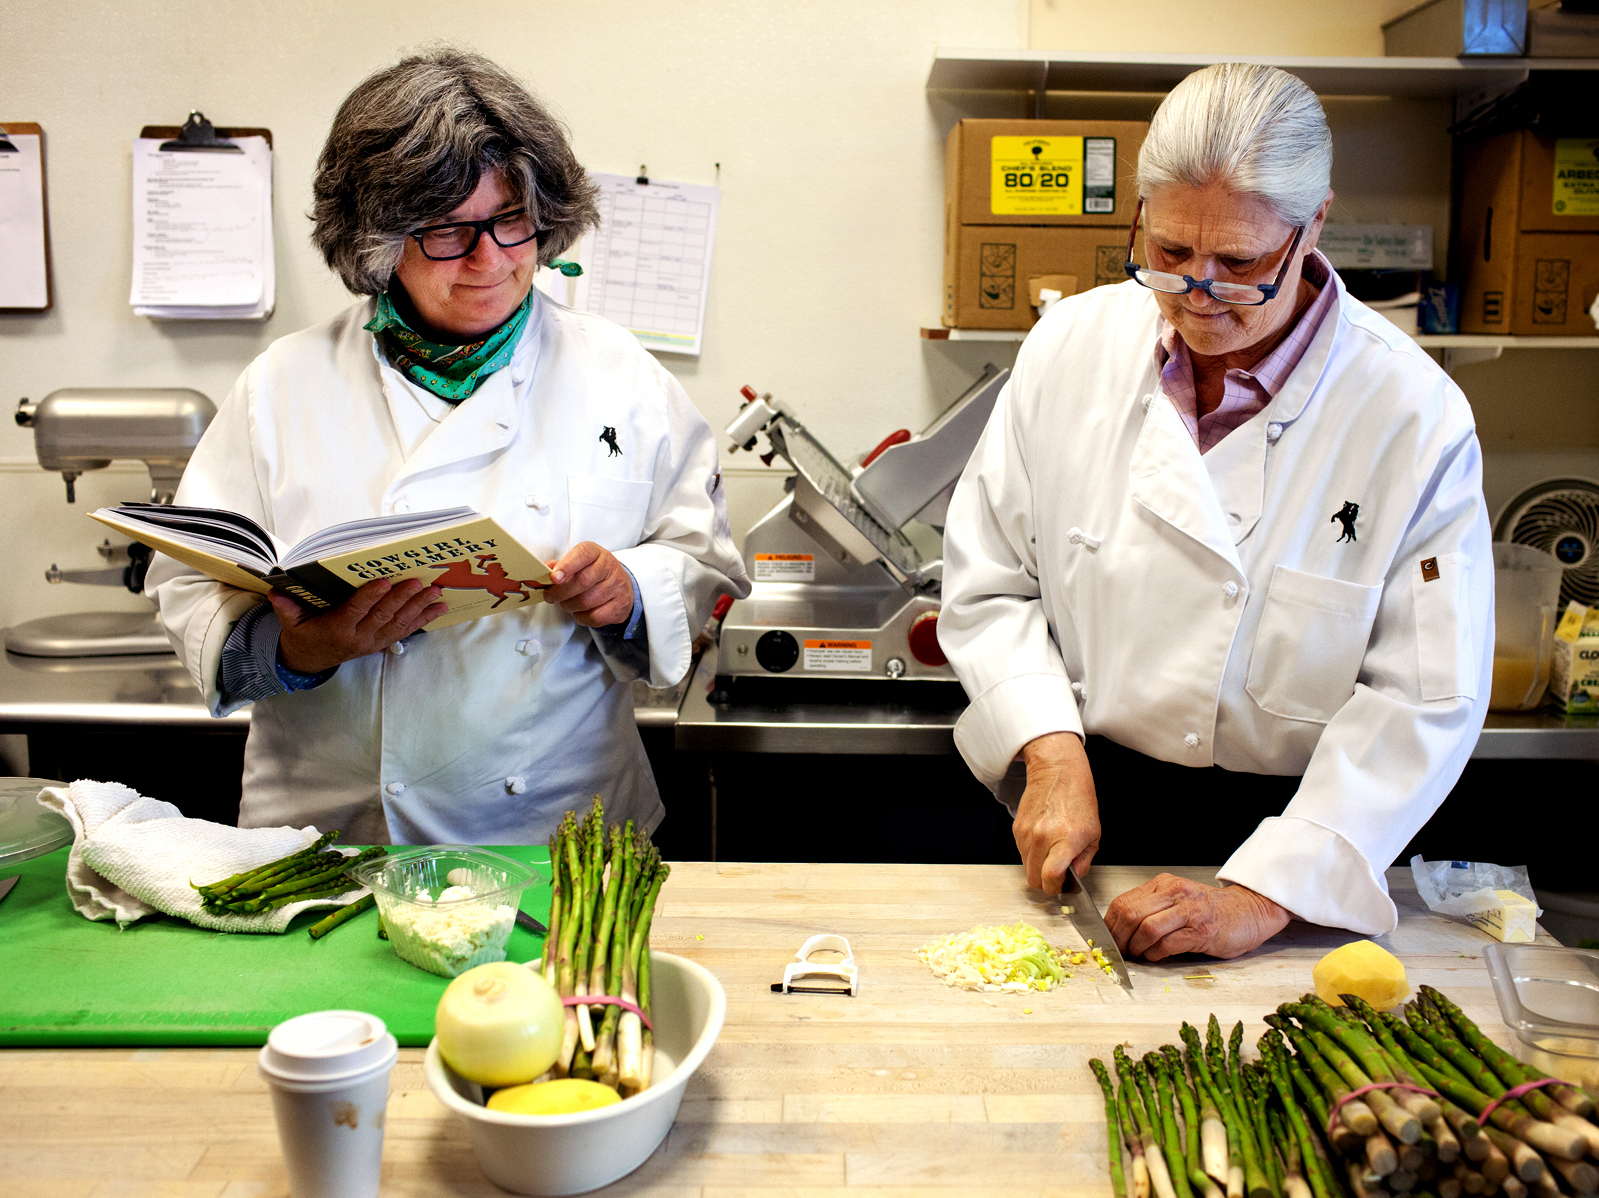 Sue Conley (left) and Peggy Smith, co-founders of Cowgirl Creamery, prepare their chilled leek and asparagus soup with creme fraiche and fresh ricotta at Cowgirl Creamery in Point Reyes Station, Calif. Photo: Tim Hussin for NPR